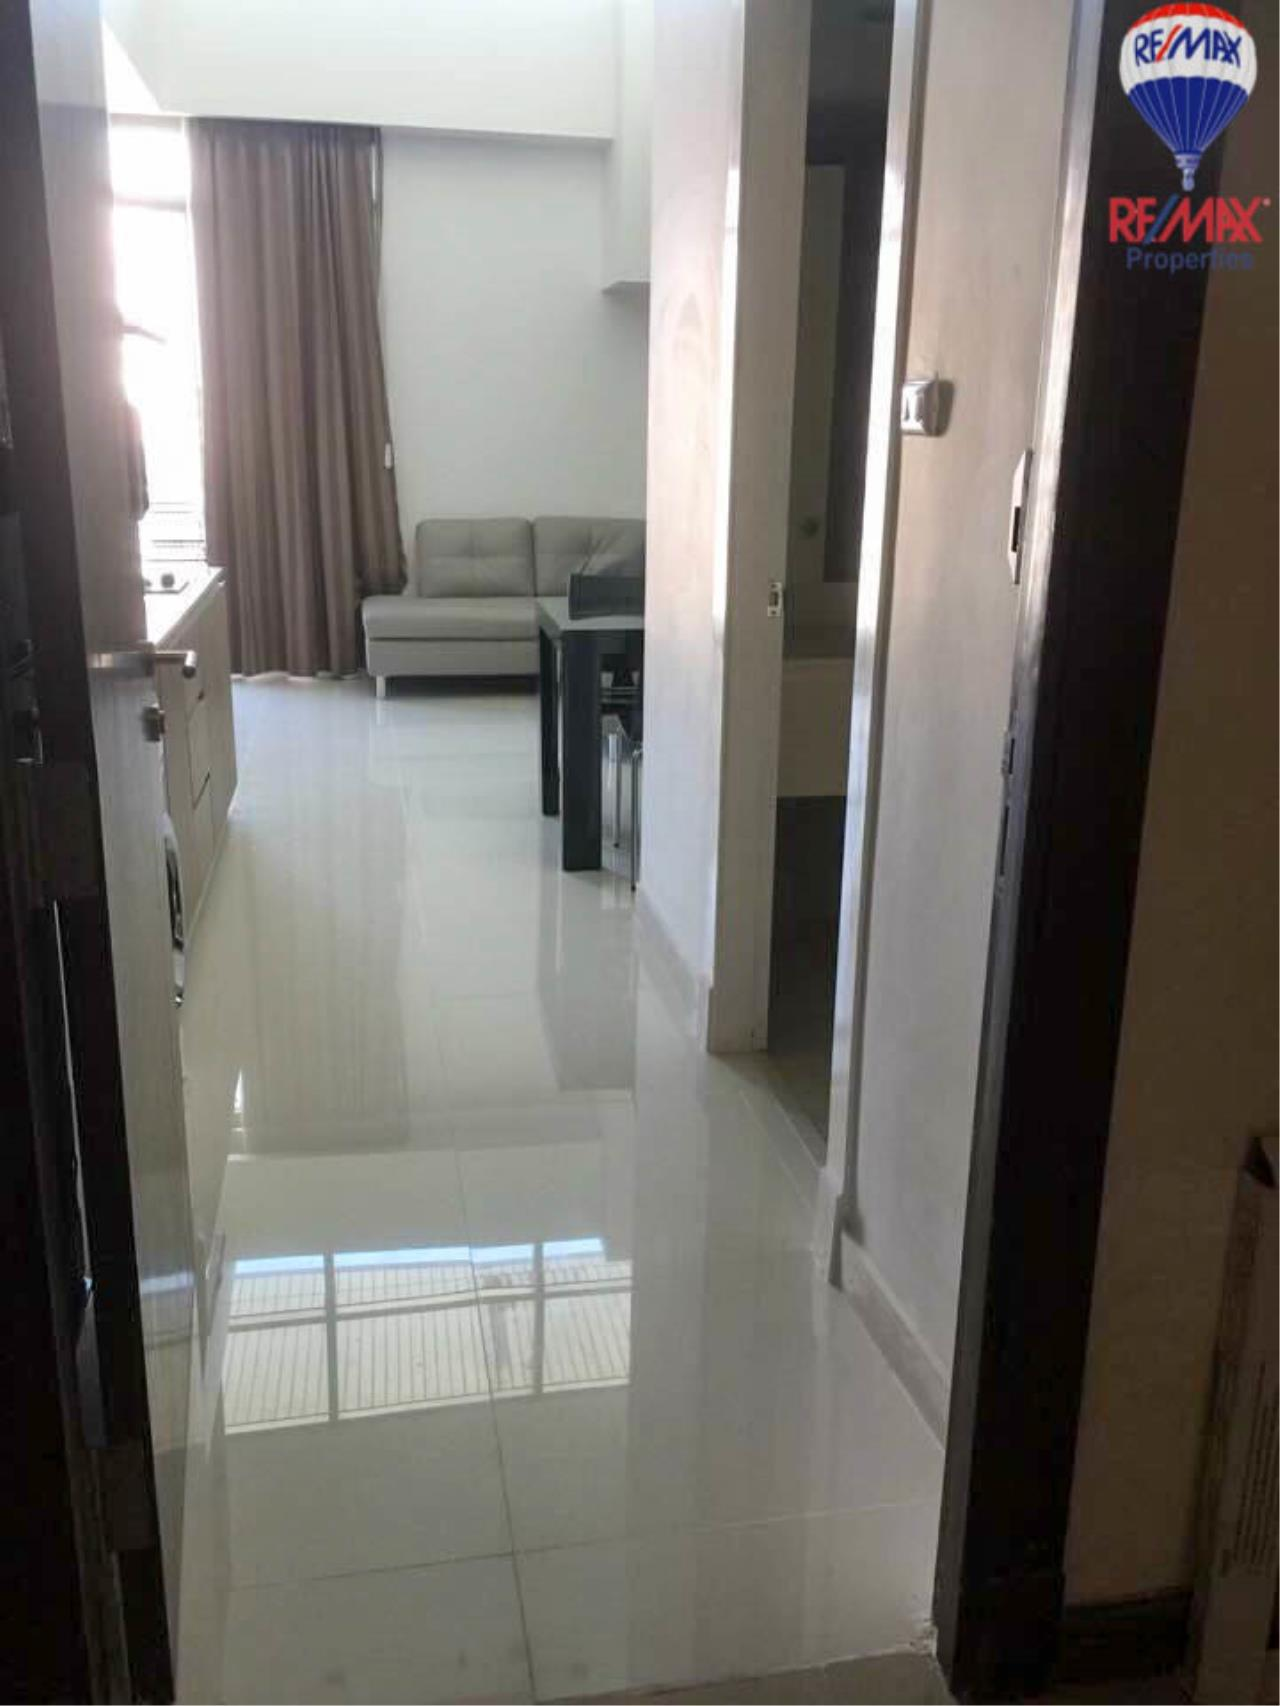 RE/MAX Properties Agency's 2 Bedrooms Duplex style for rent at The Trendy condo 4